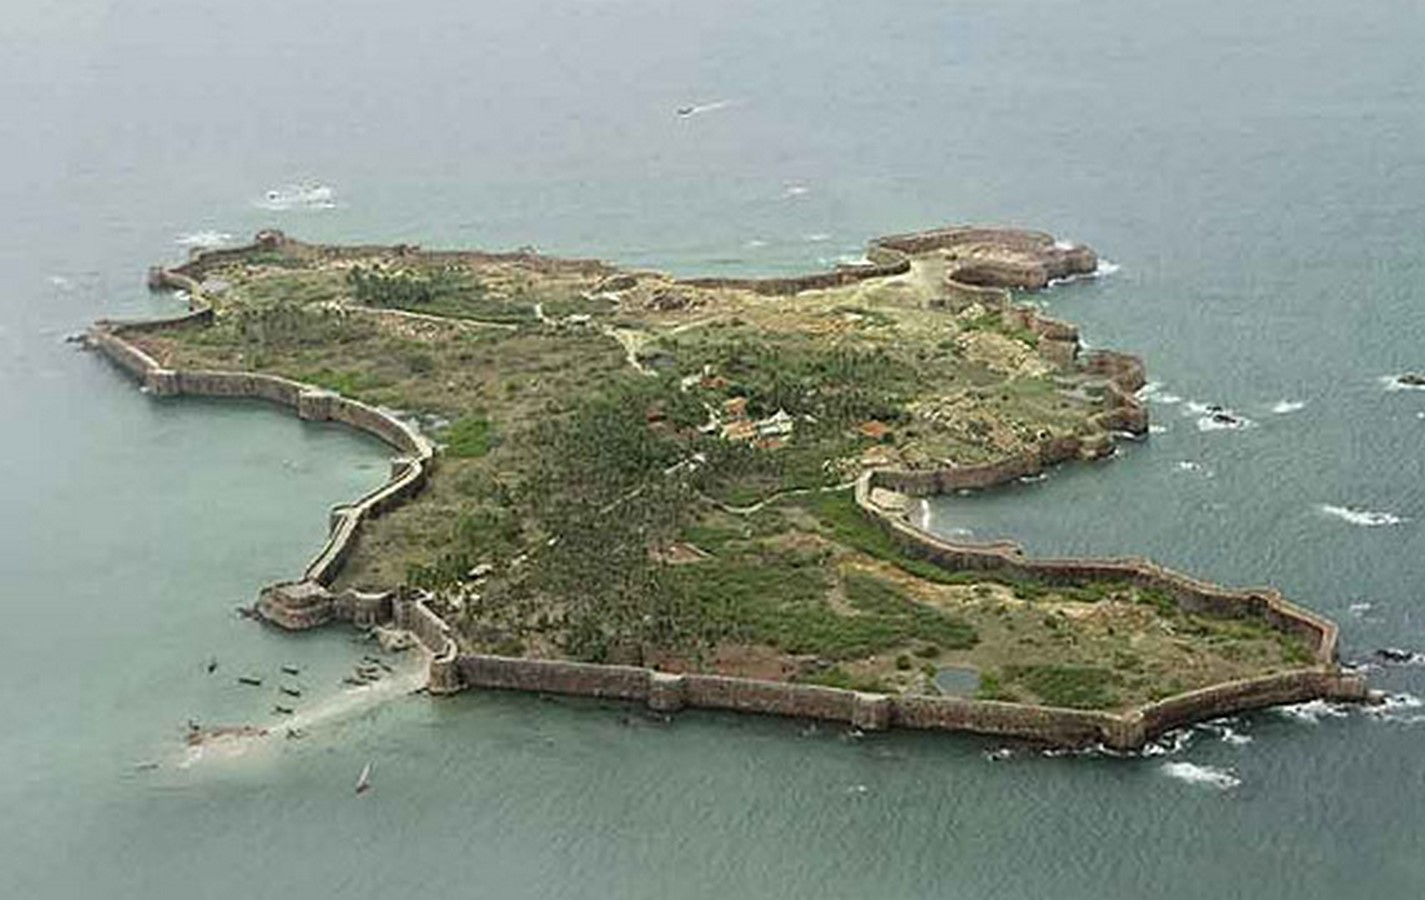 Sindhudurg fort: The 1664 architecture marvel constructed on an island - Sheet2